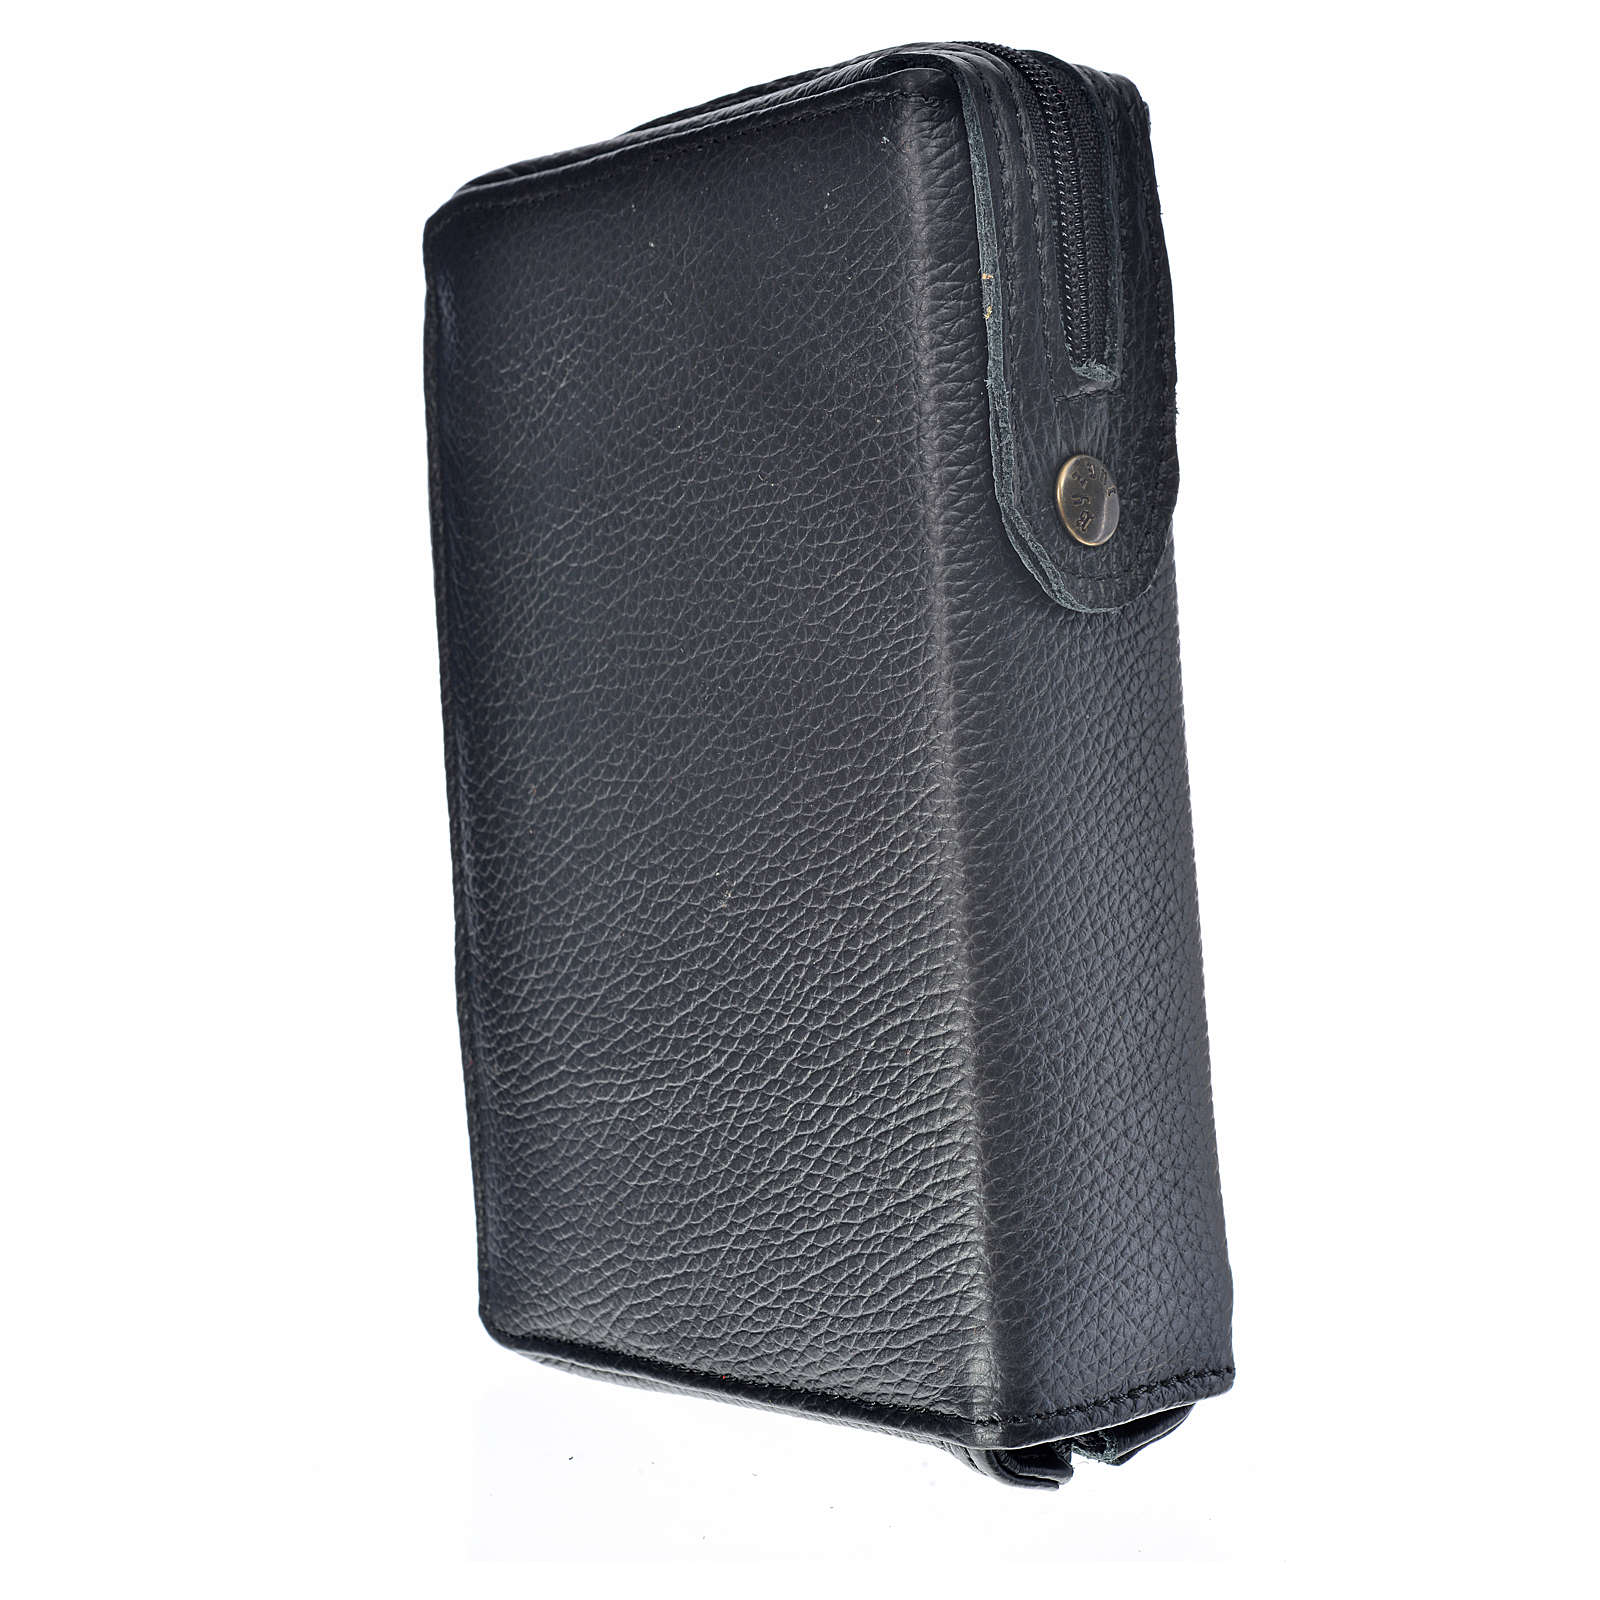 Divine office cover black leather Divine Mercy 4